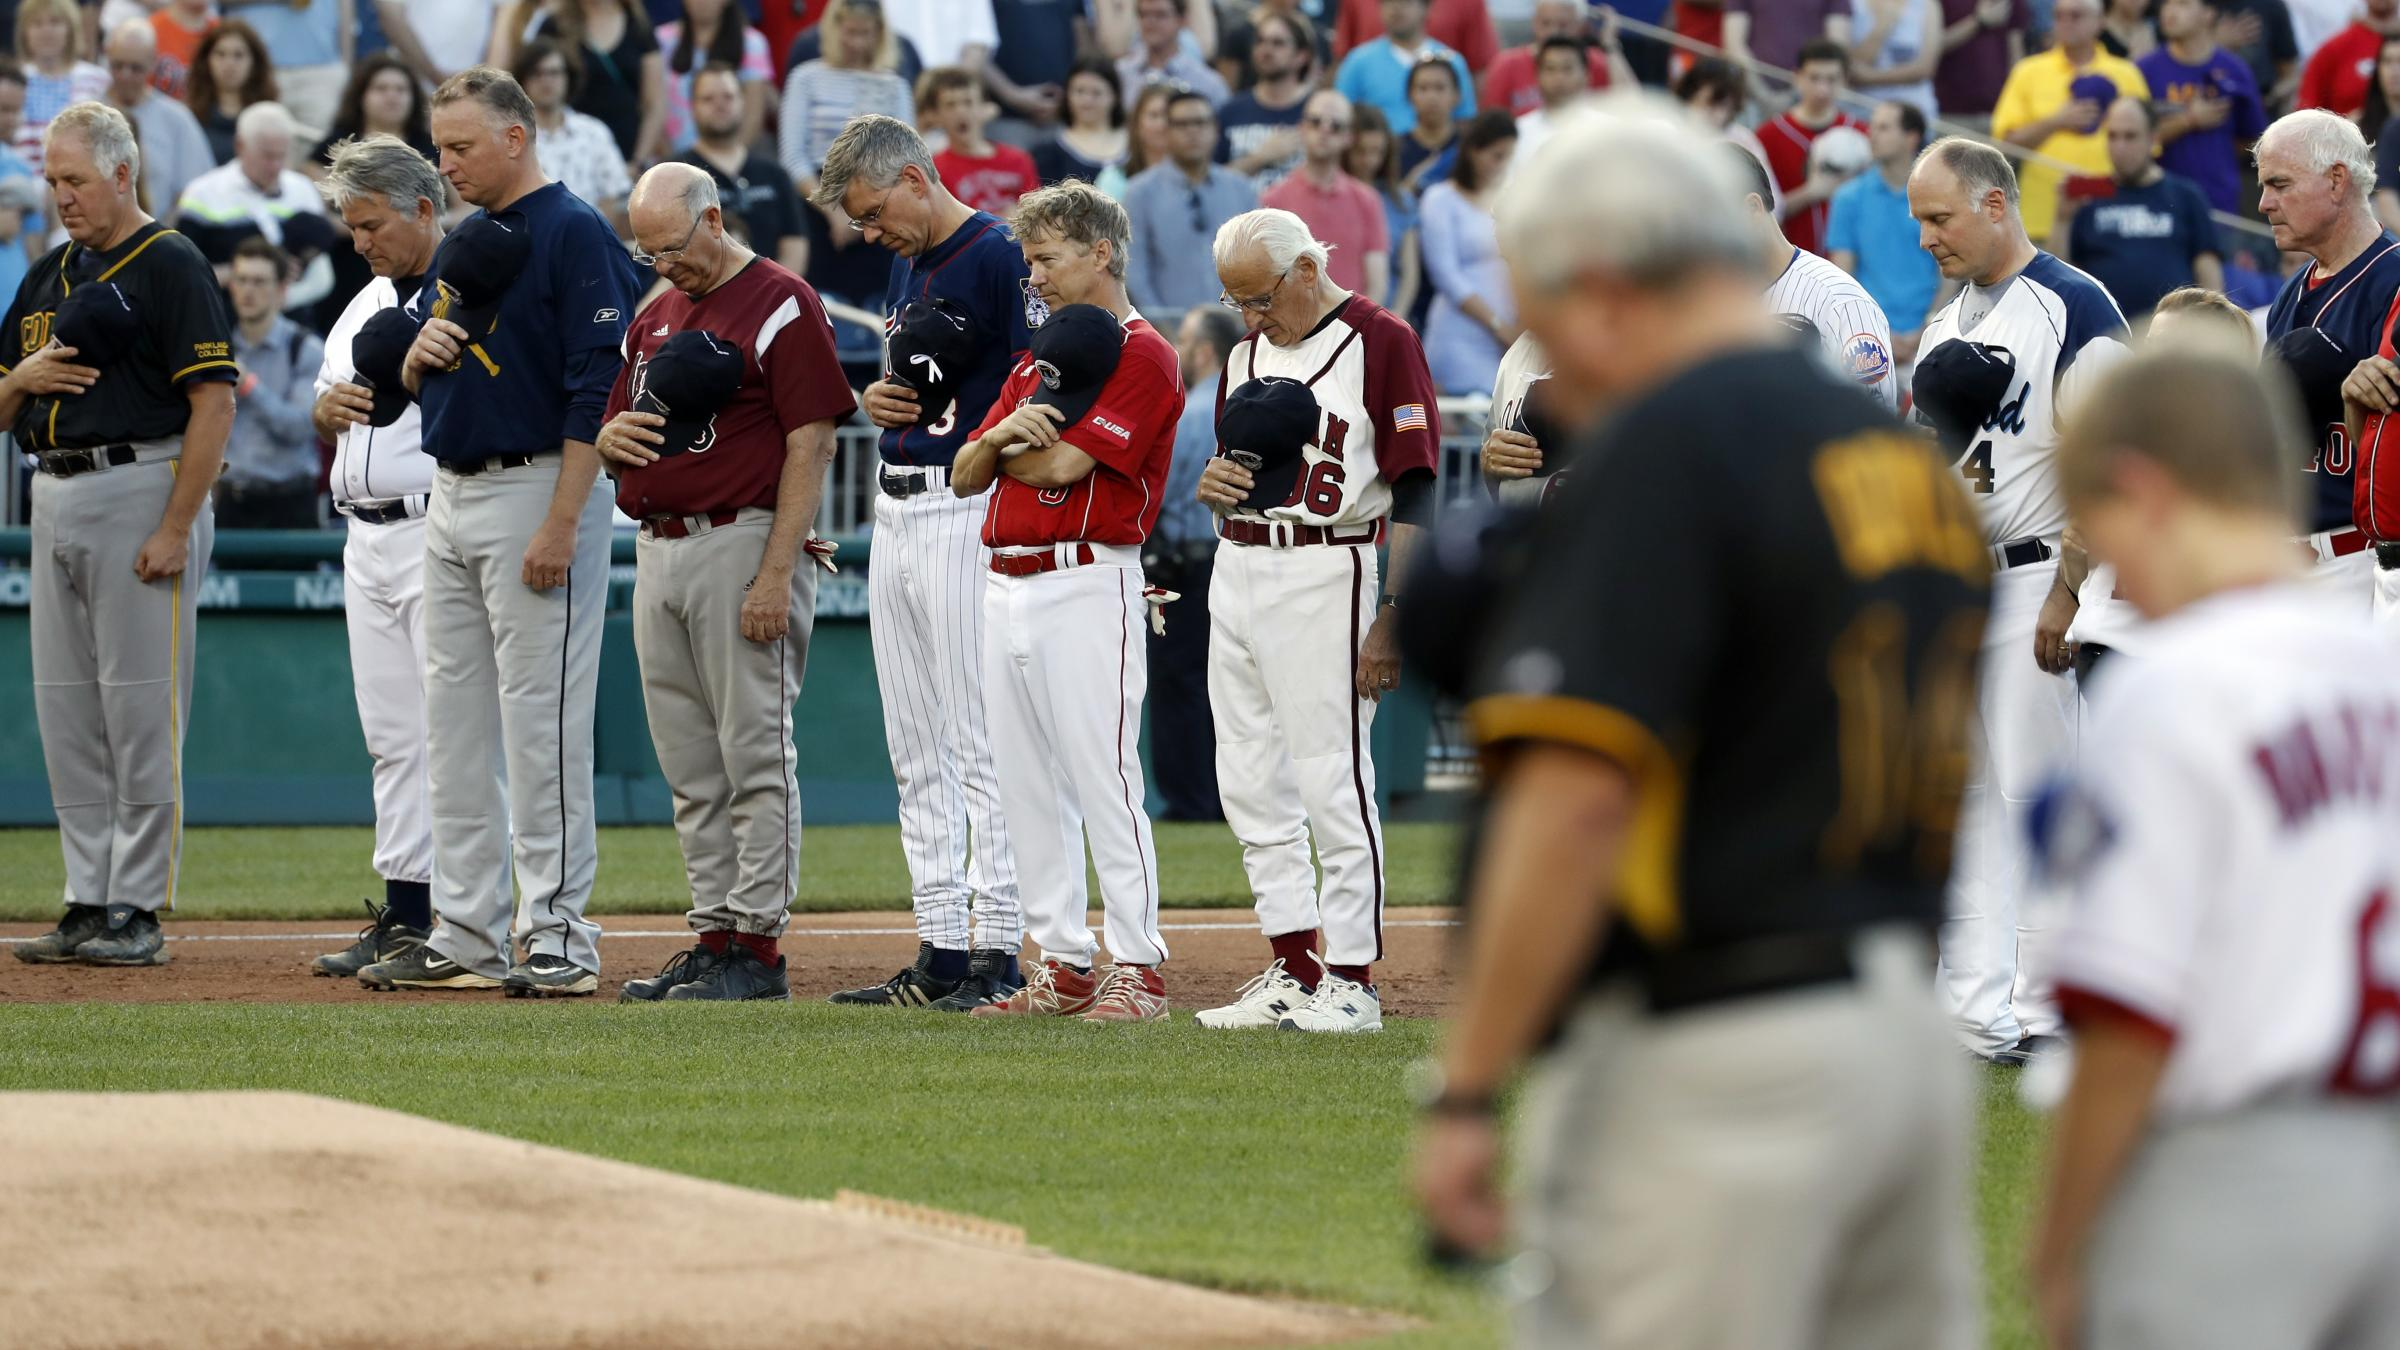 Watch the Congressional Baseball Teams Come Together For Emotional Moment of Prayer